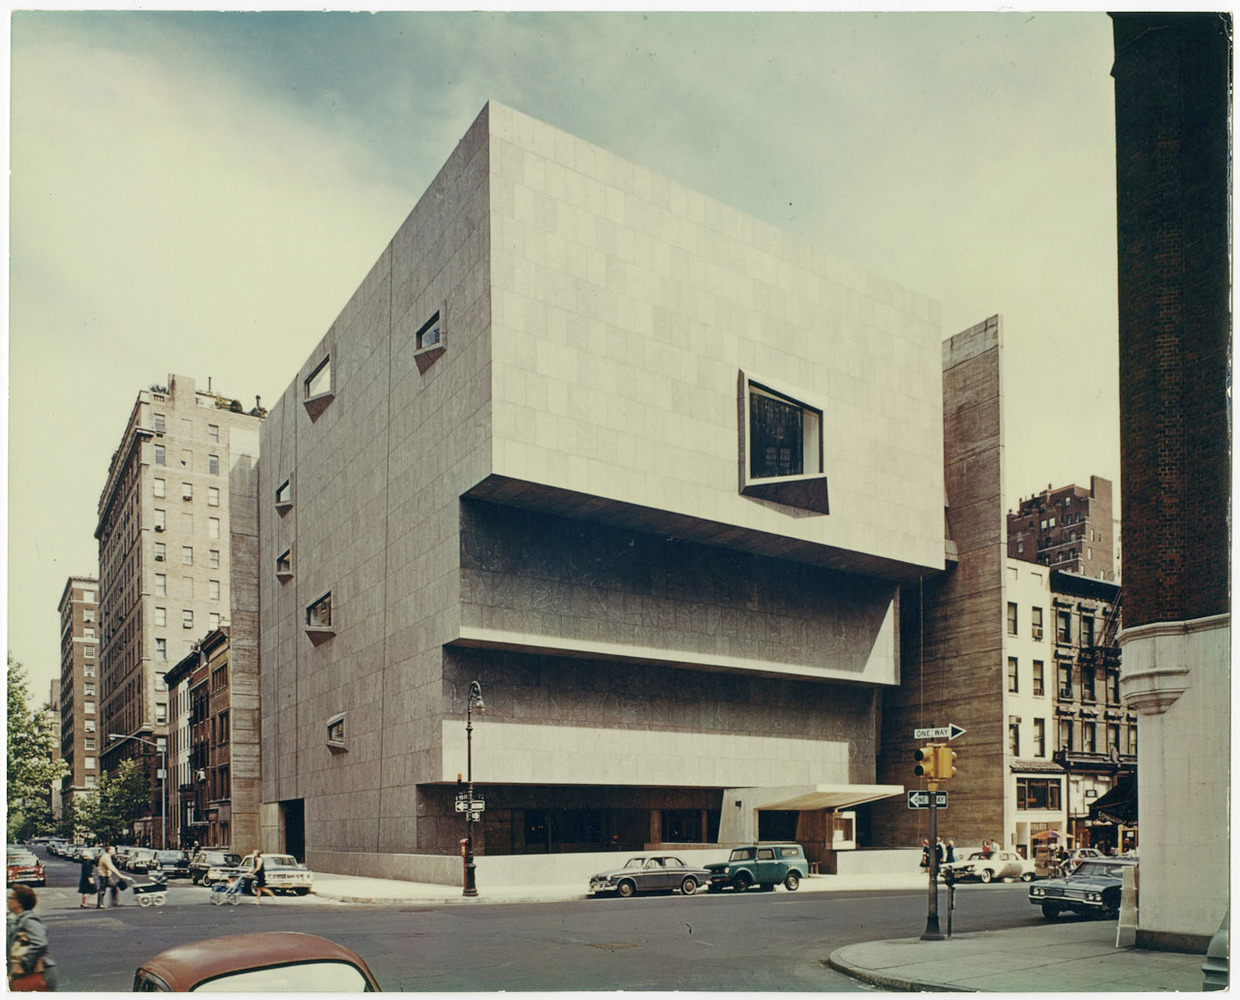 Gallery of syracuse university unveils first phase of marcel breuer digital a - Marcel breuer architecture ...